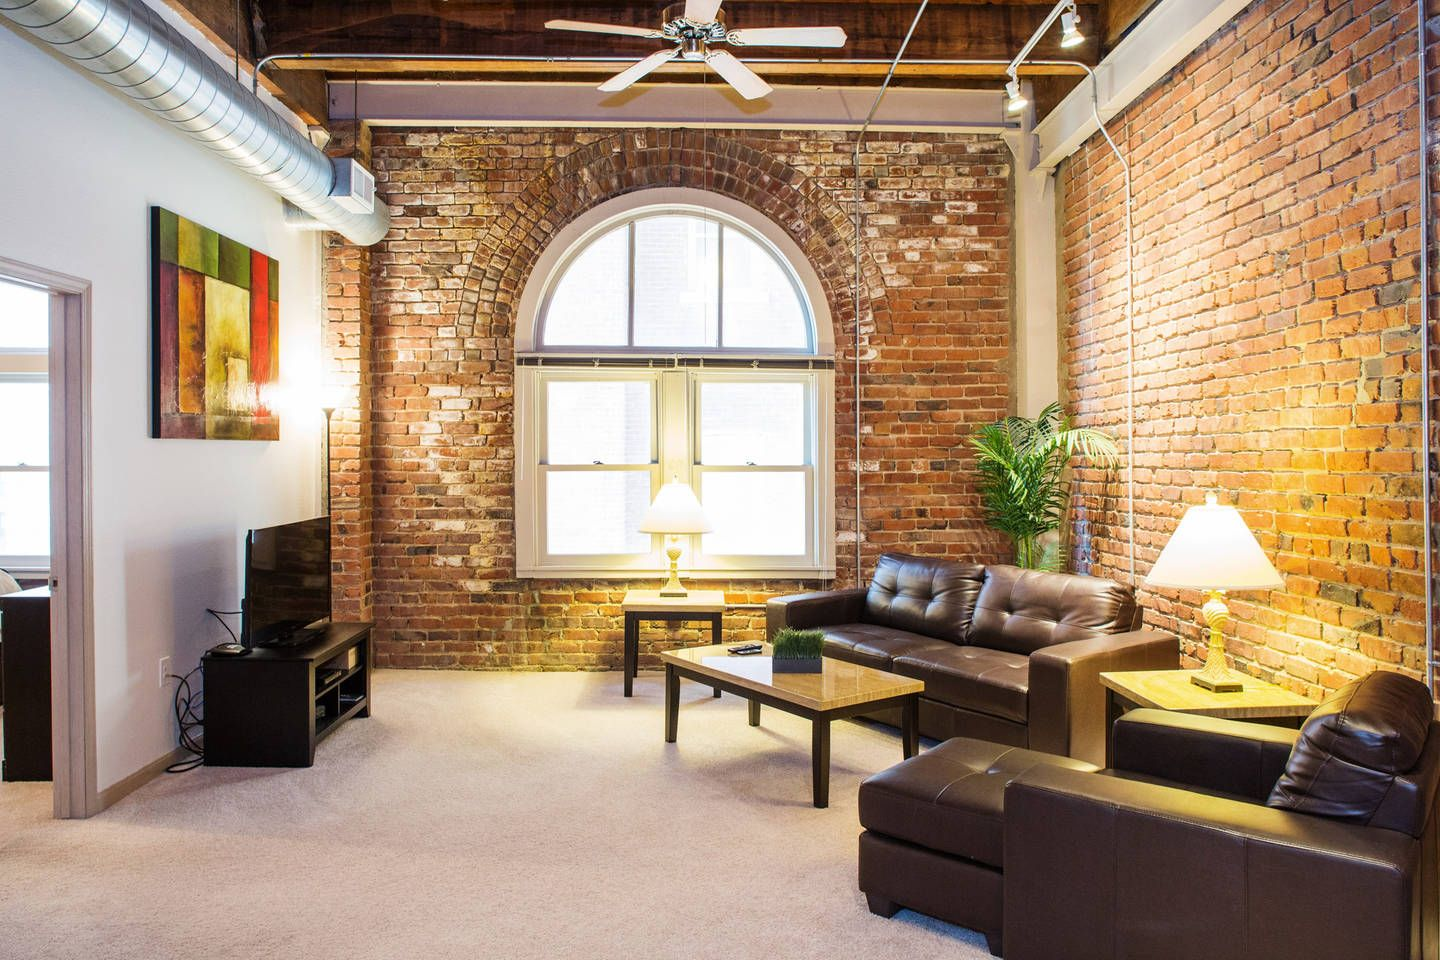 Pin By Execustay Midwest On Omaha Old Market Lofts Omaha Old Market Temporary Housing Loft